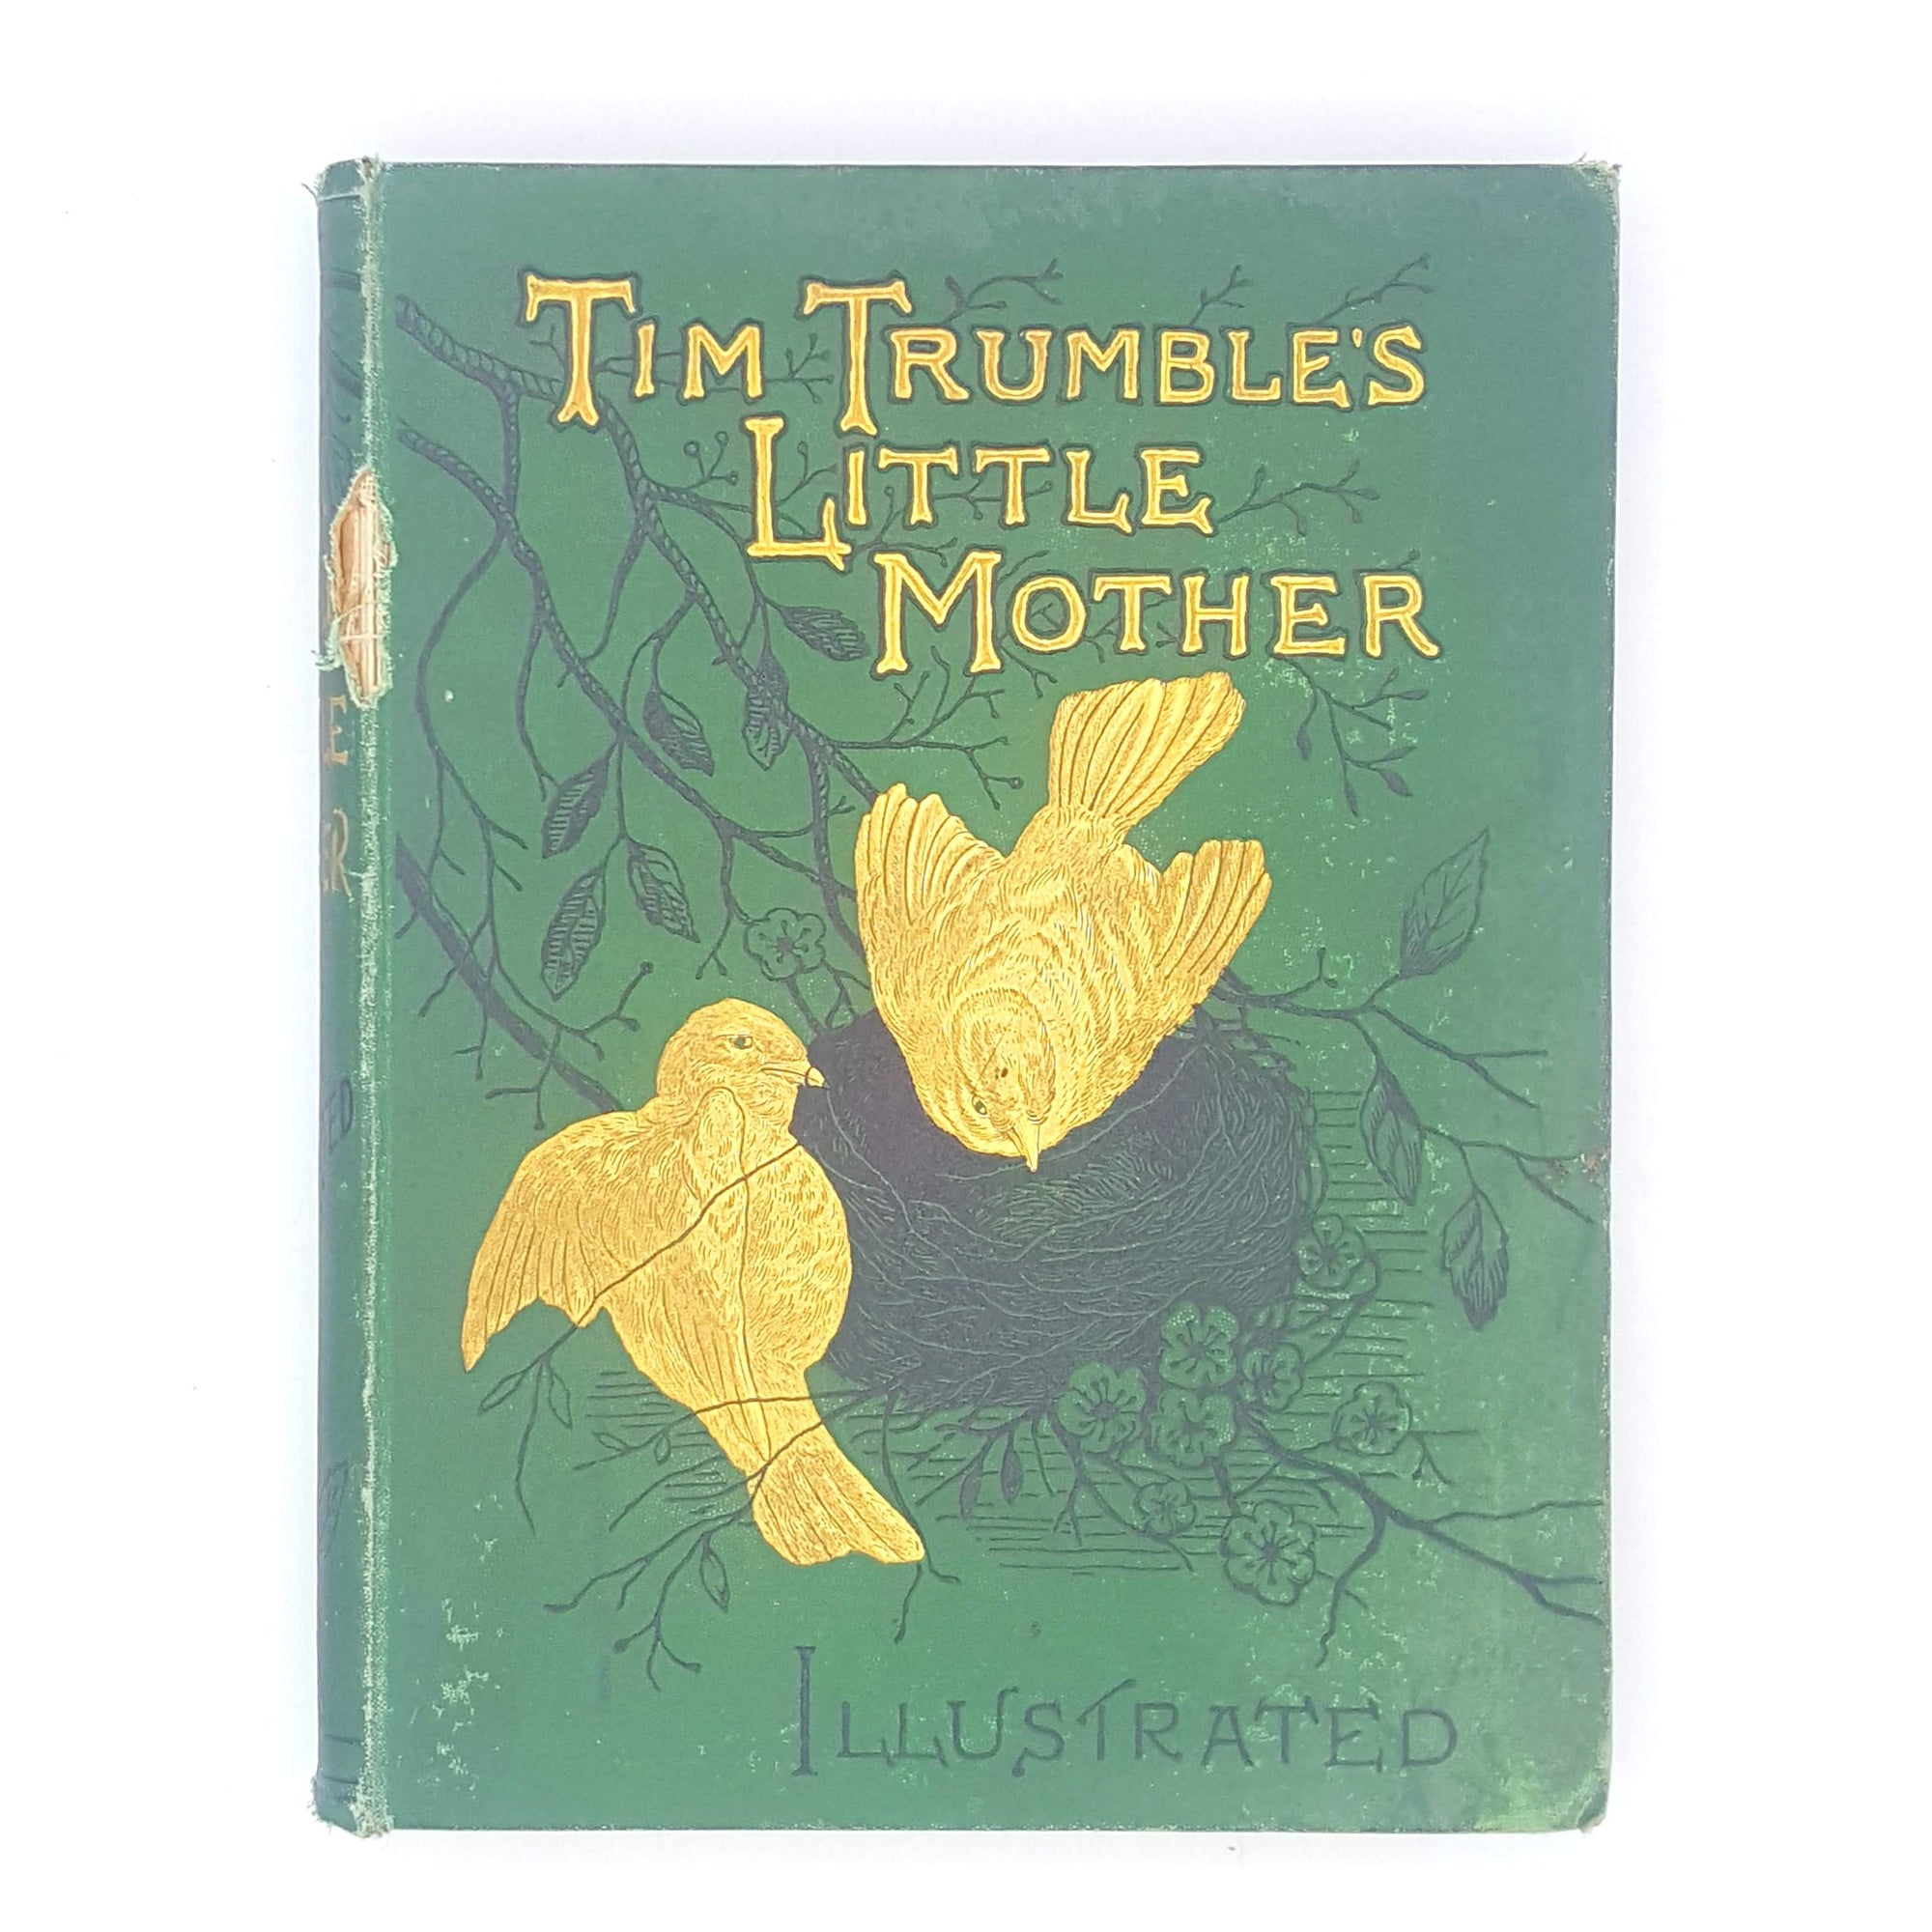 Tim Trumble's Little Mother by C. L. Mateaux